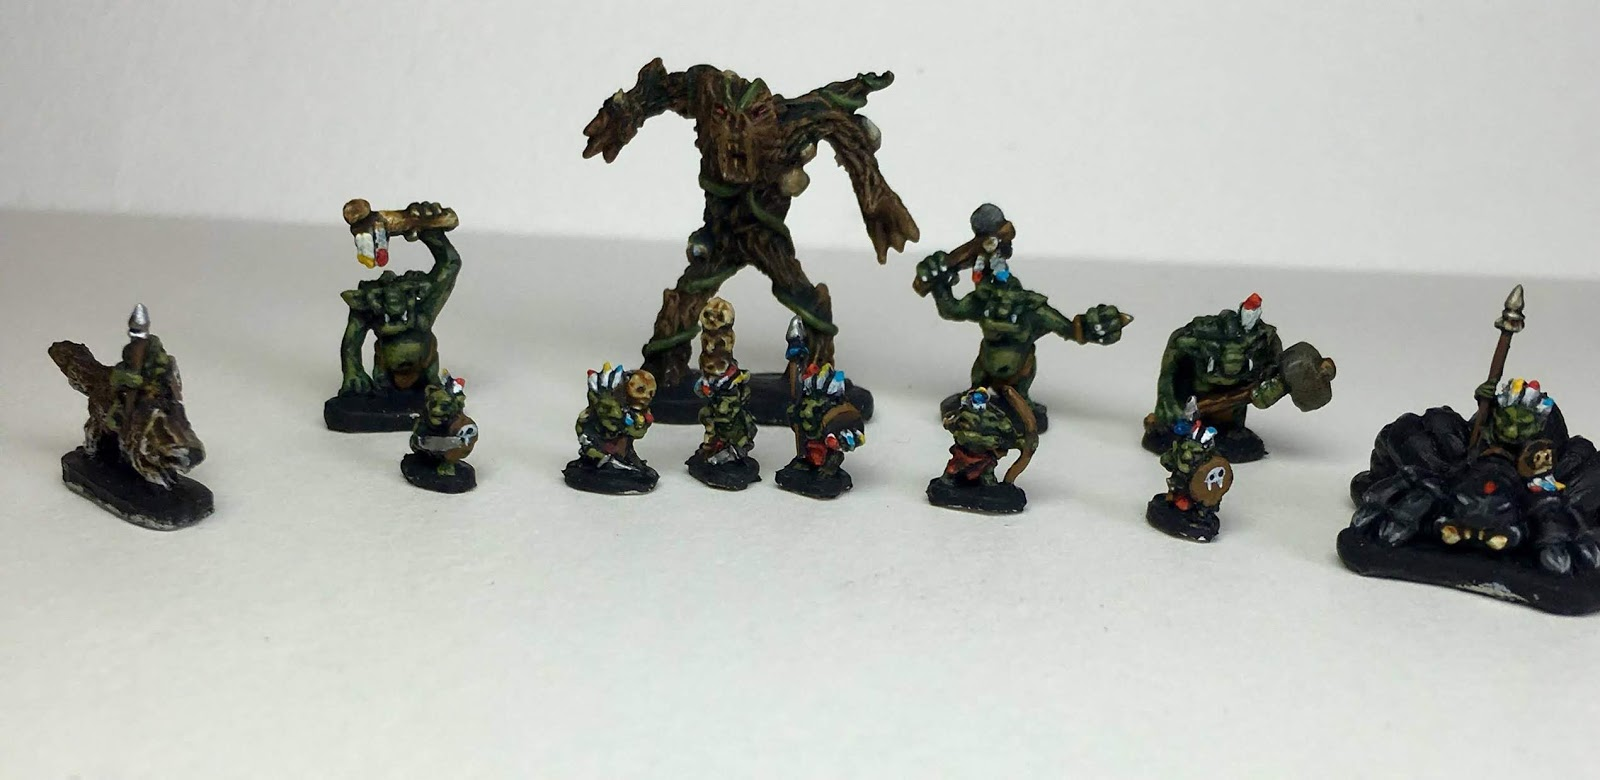 6mm scale forest goblins